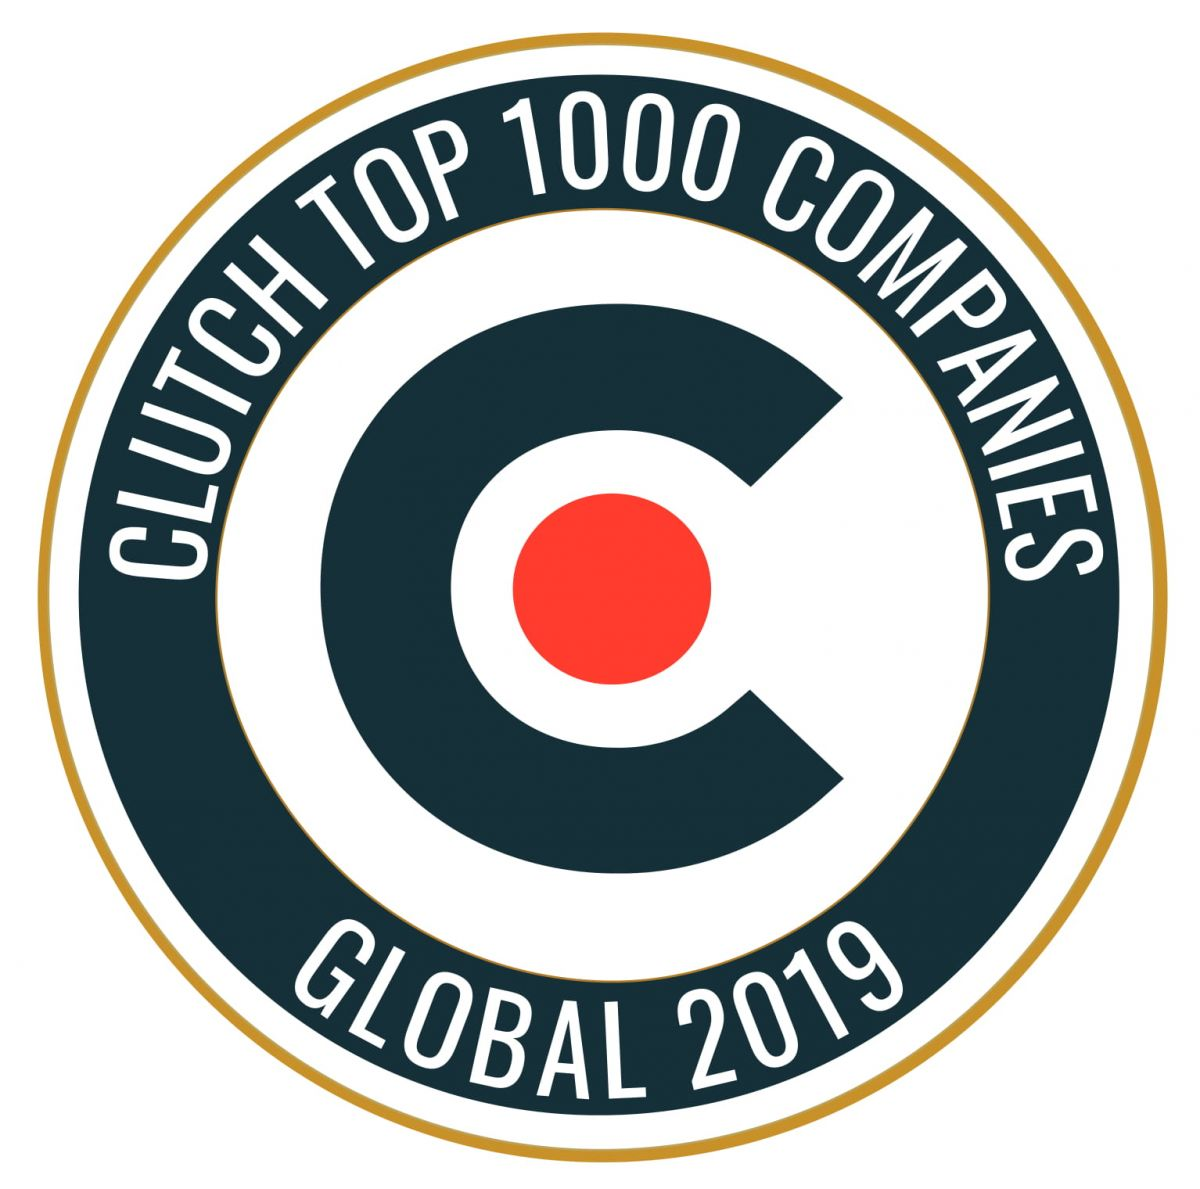 Clutch Top 1000 Companies award for Experience Dynamics